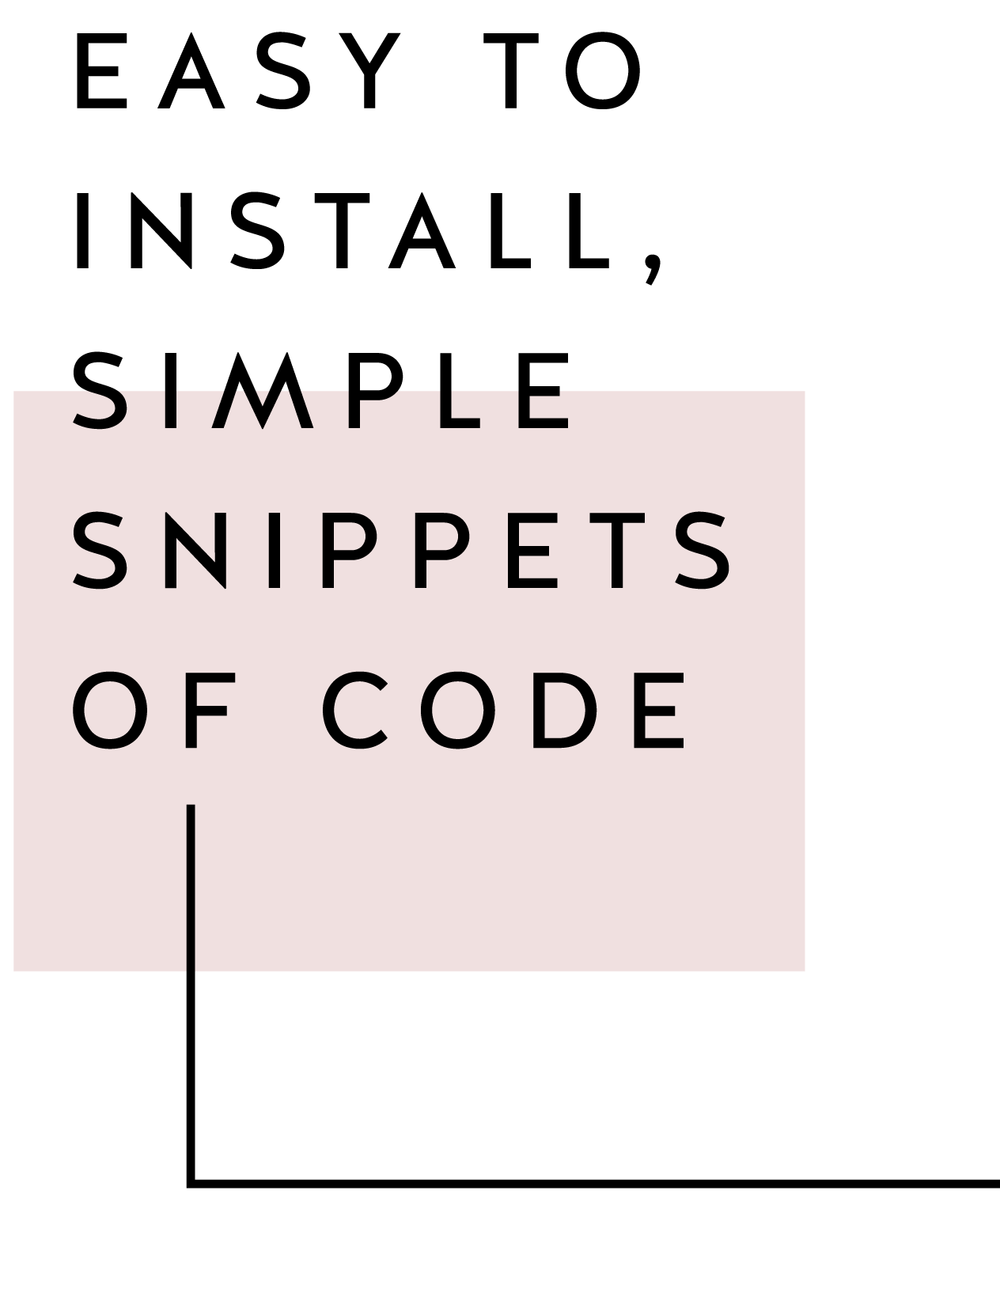 EASY-TO-INSTALL-code-squarespace-shop-37-37.png